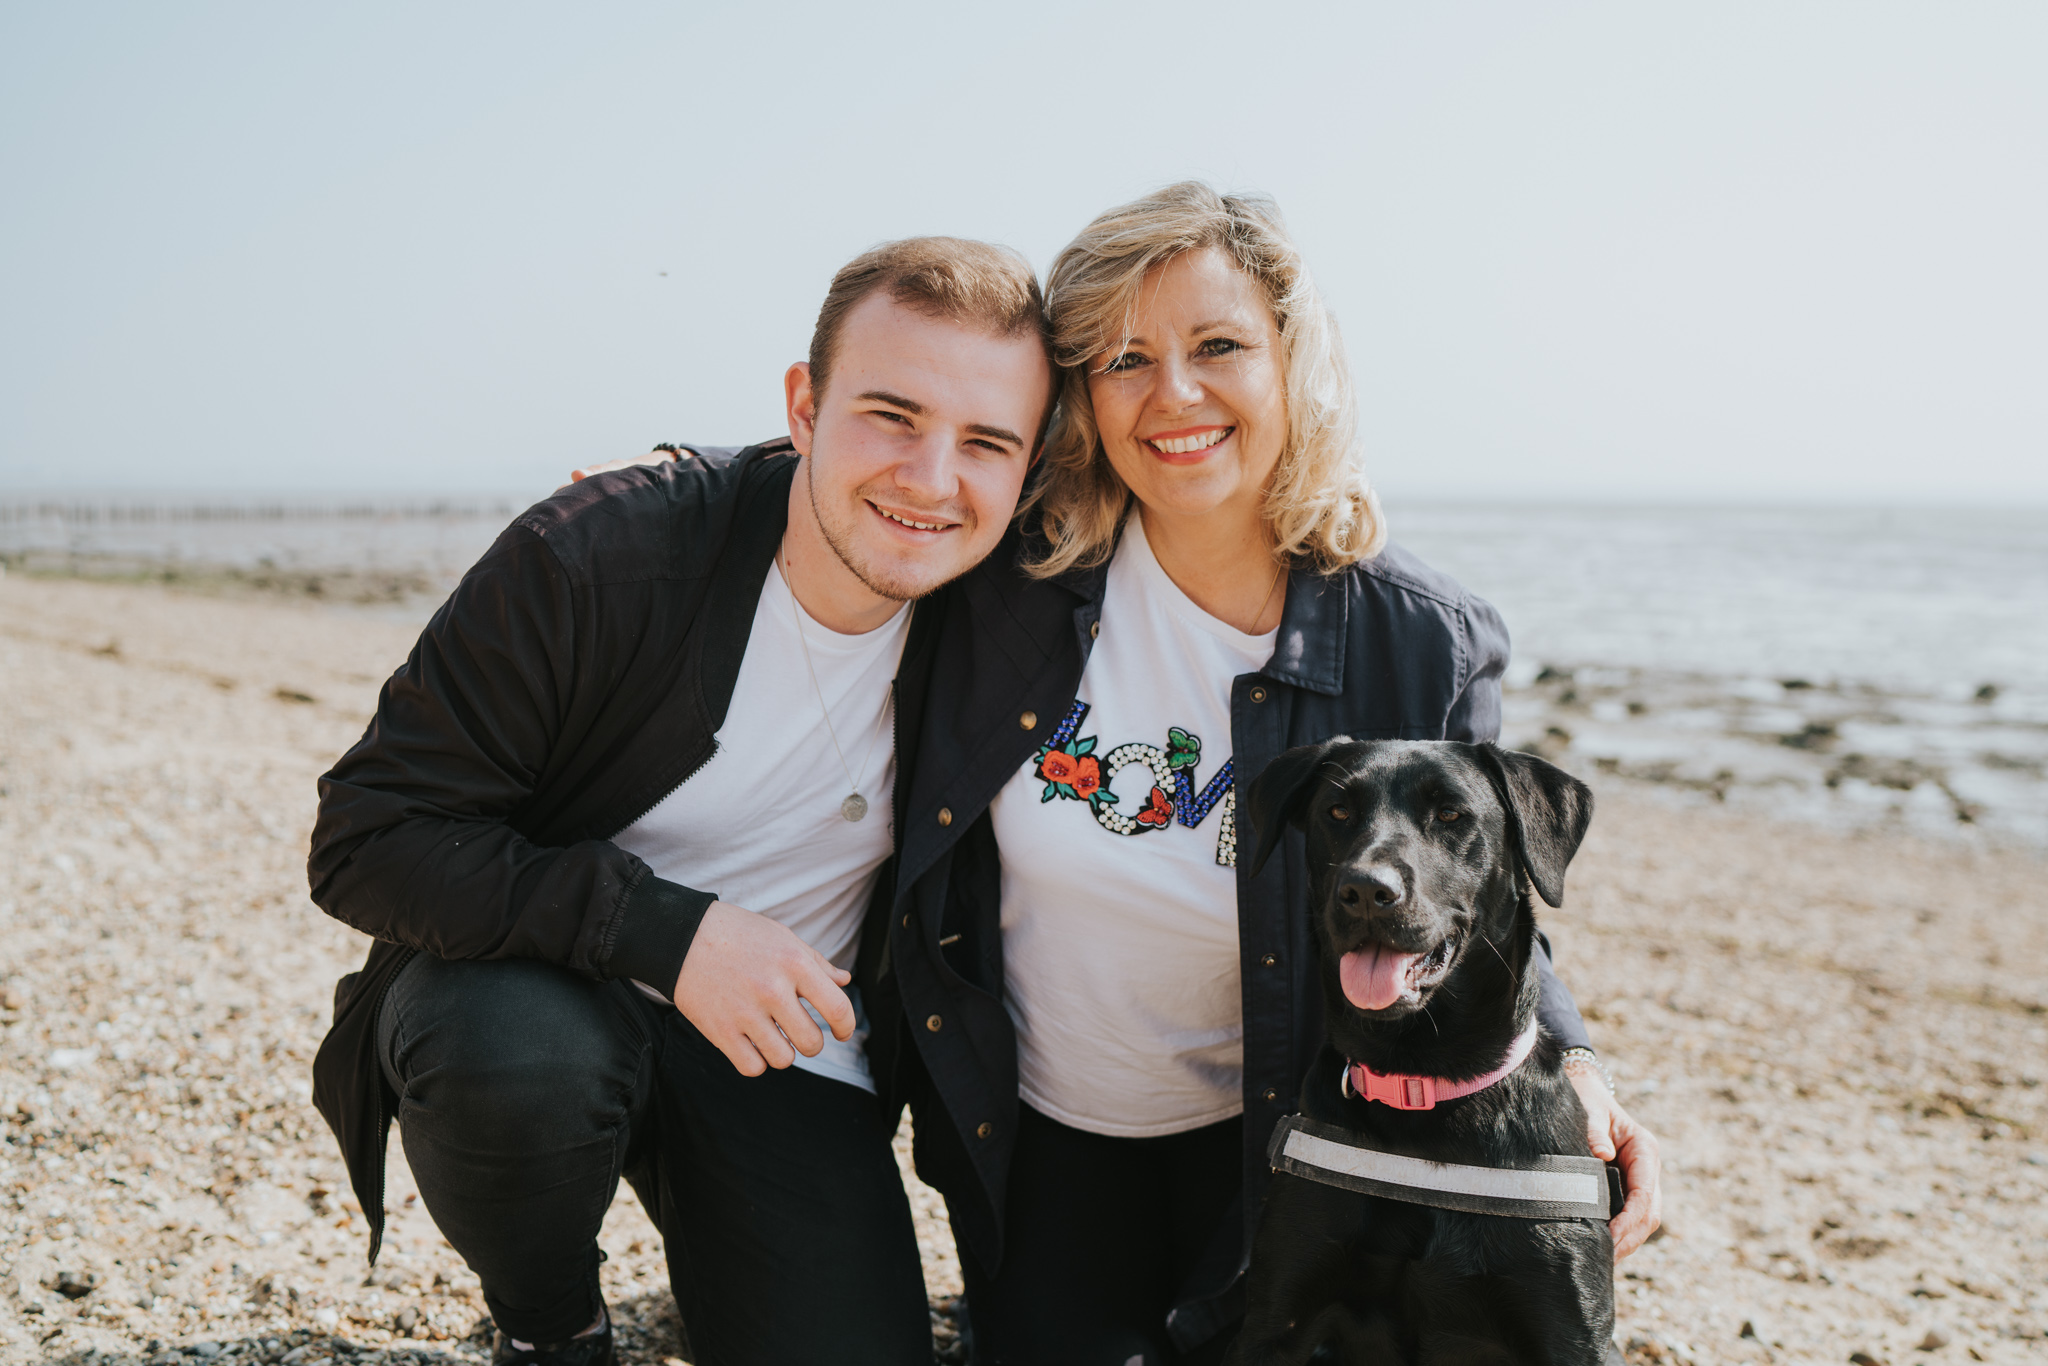 penny-family-cudmore-grove-beach-family-session-grace-elizabeth-colchester-essex-alternative-wedding-lifestyle-photographer-essex-suffolk-devon-11.jpg